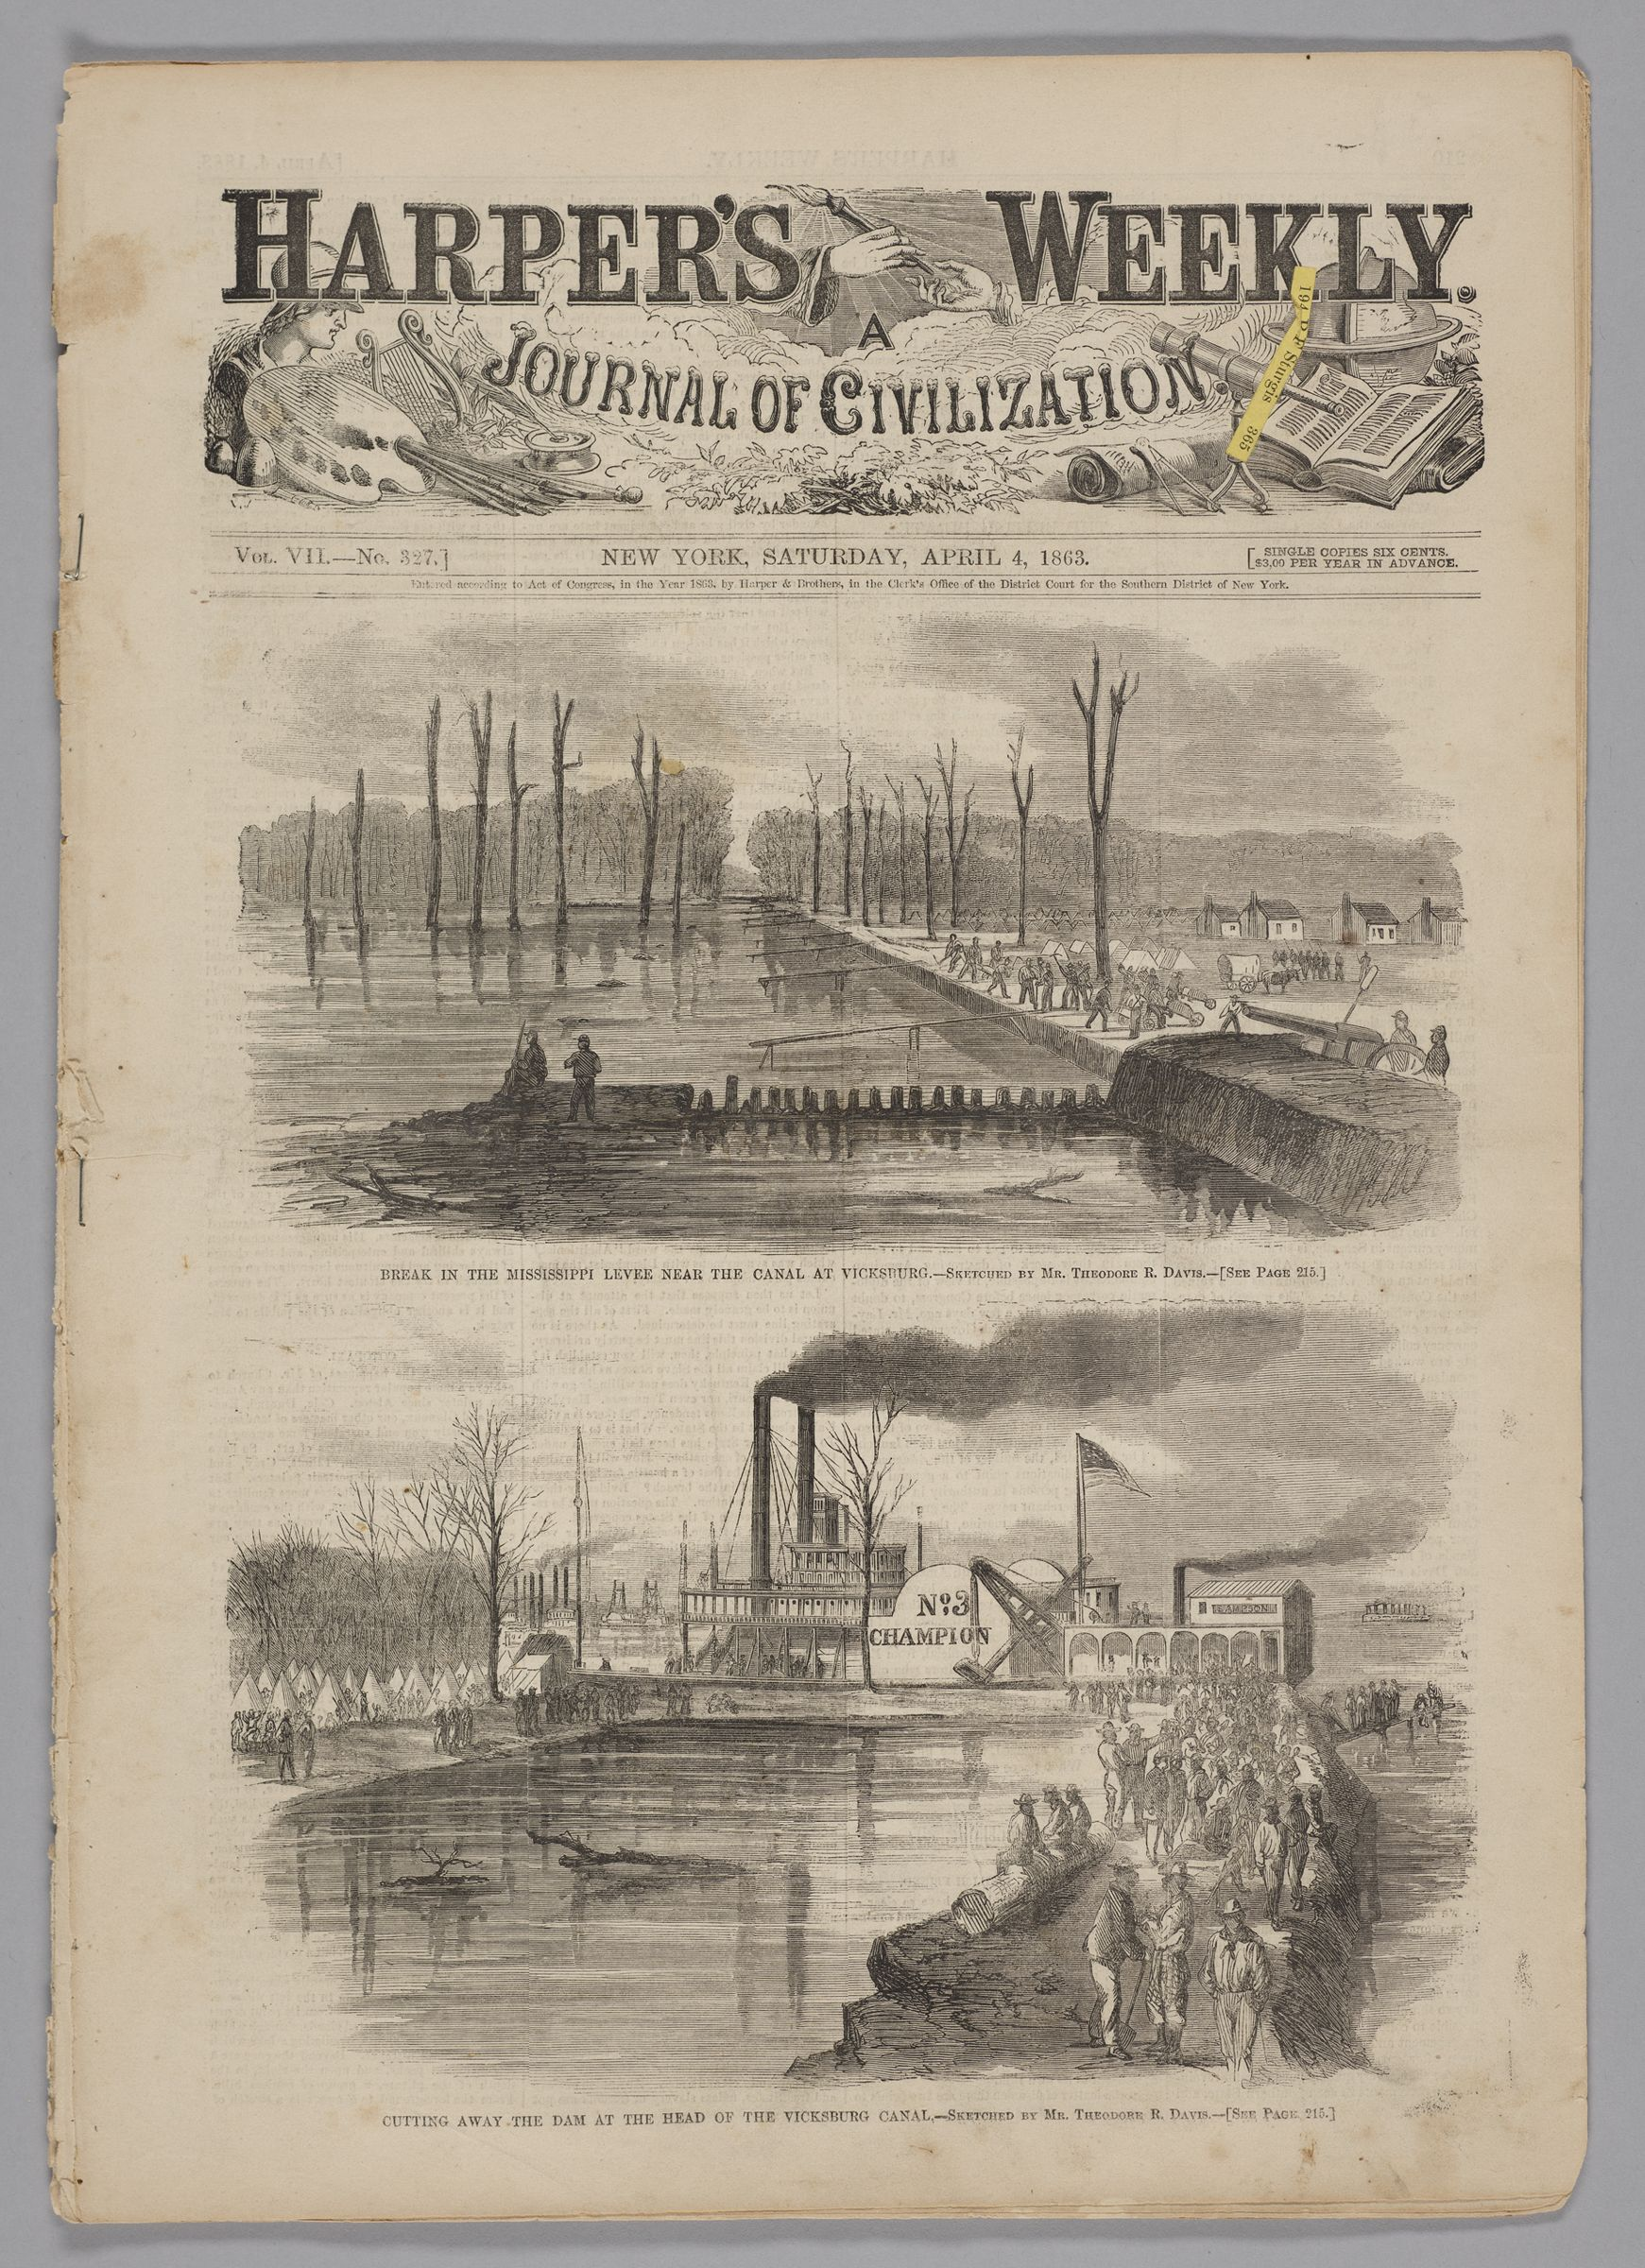 Harper's Weekly, Vol. Vii, No. 327